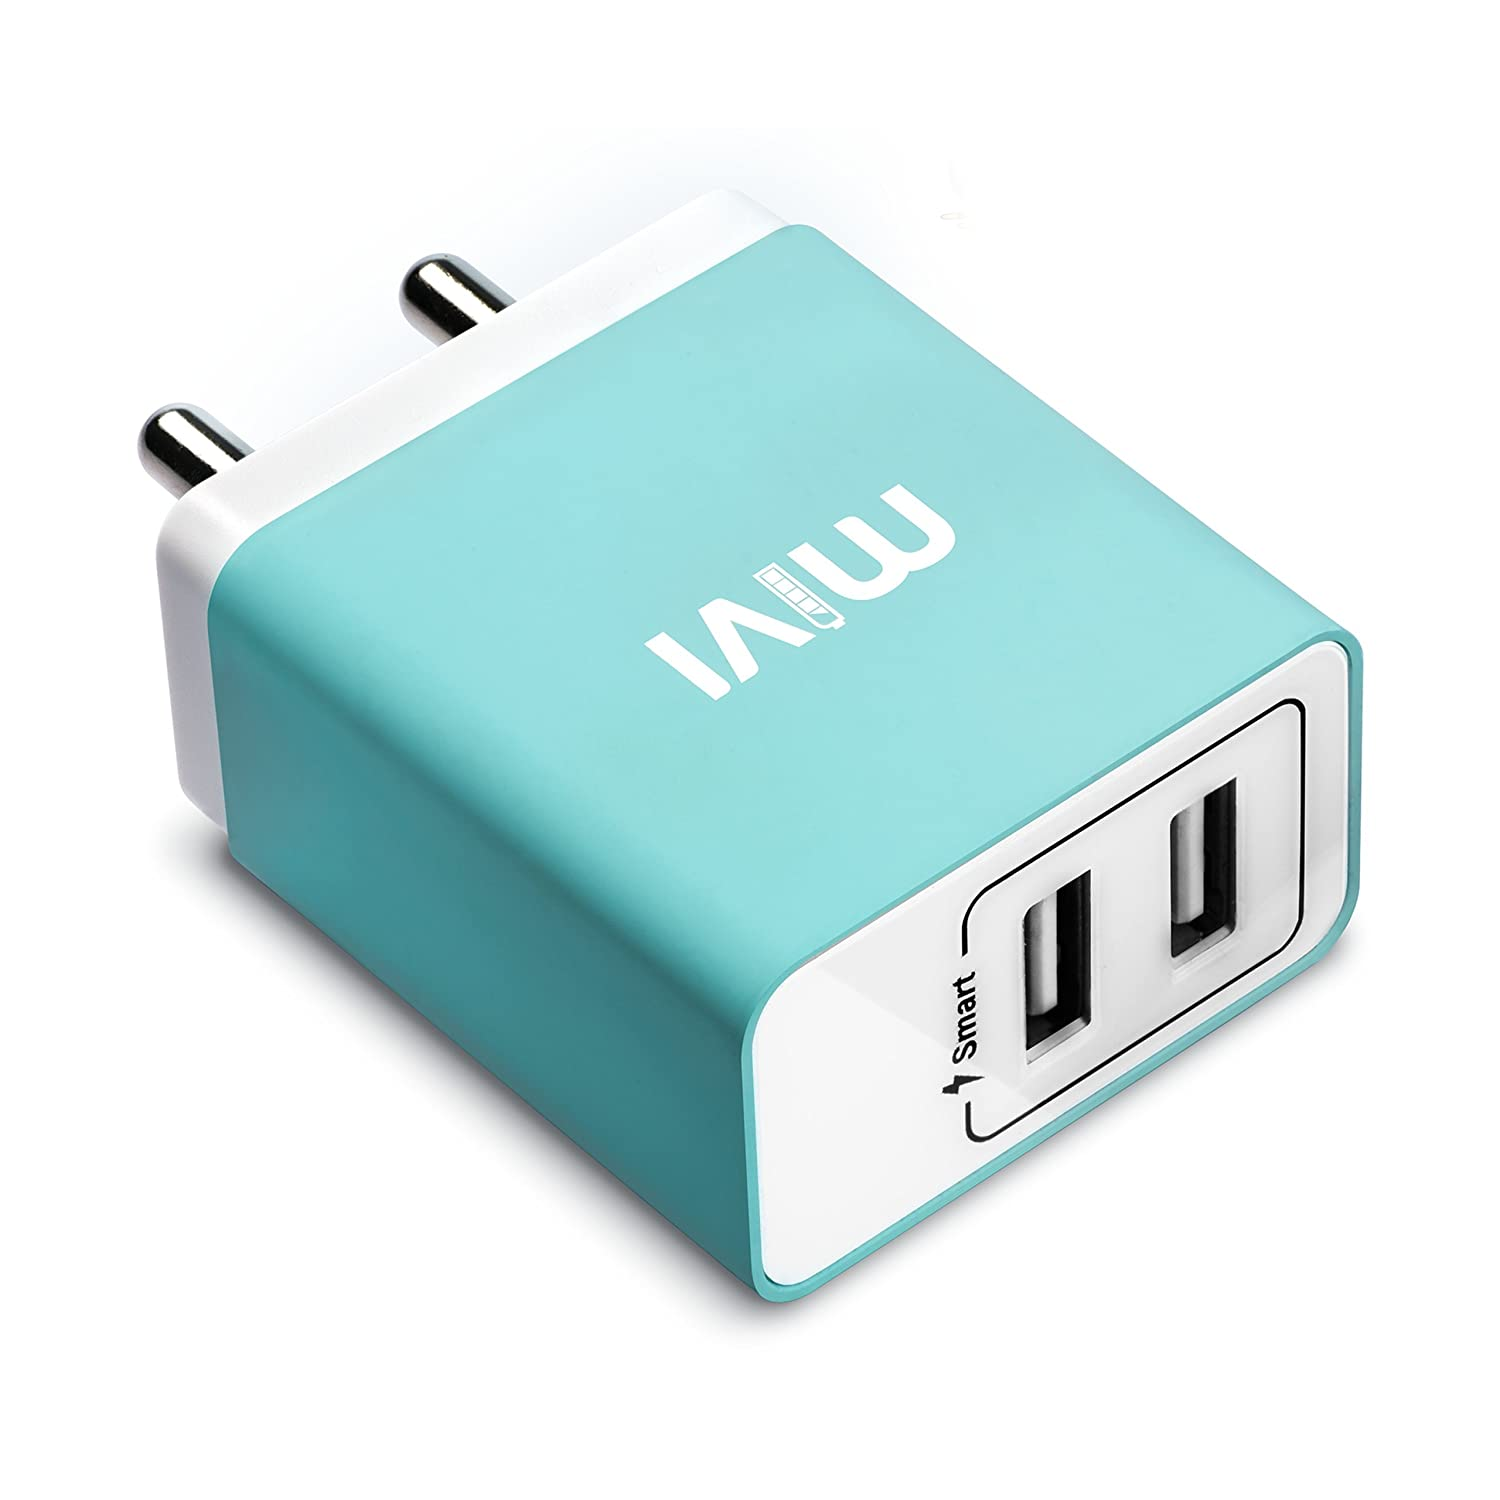 Mivi 31A Dual Port Smart Wall charge adapter with in-built Auto-detect Technology compatible with Android, iOS Phones and all other mobile devices, tablets, power banks, bluetooth speakers, cameras and More (Blue)